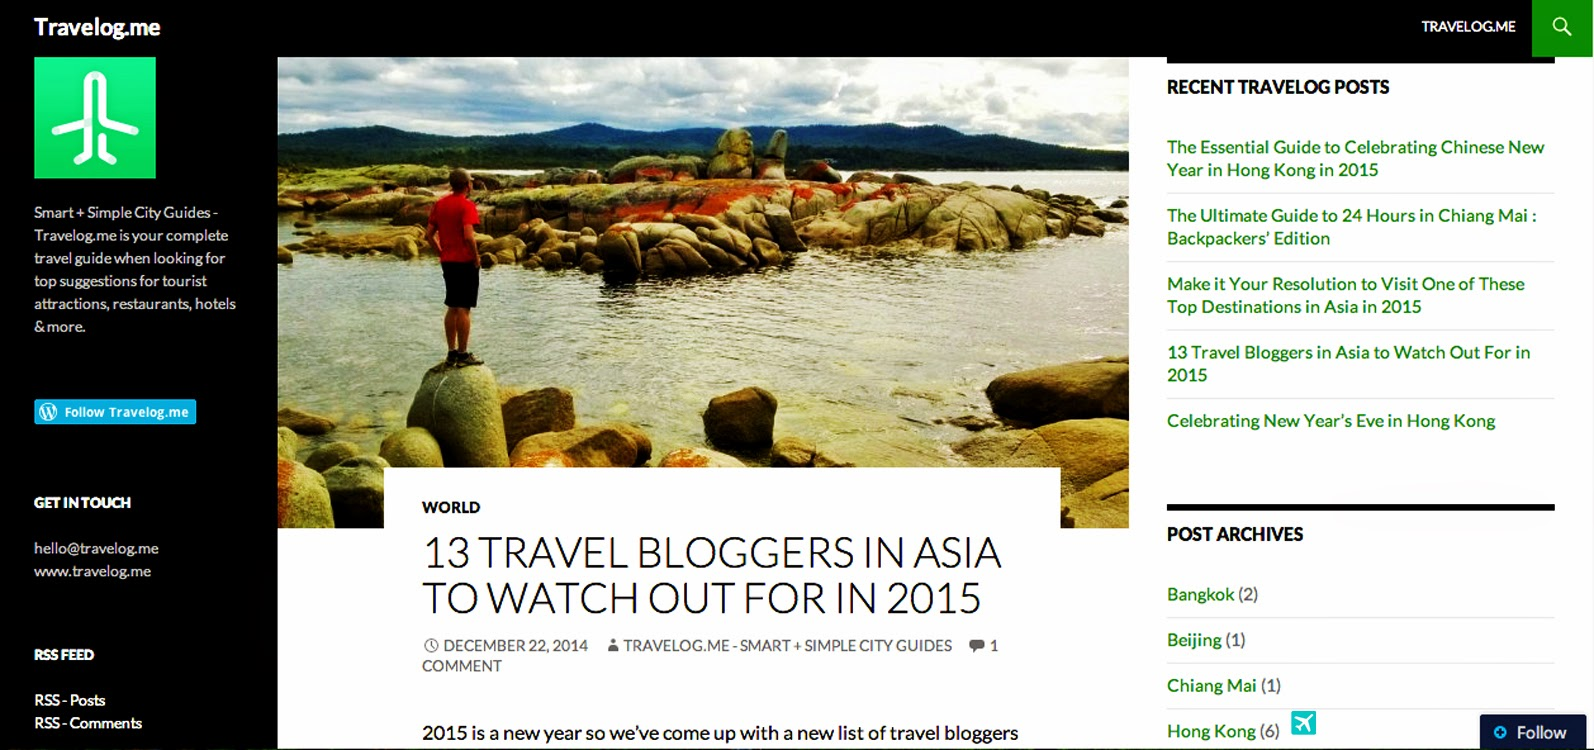 13 Travel Bloggers in Asia To Watch Out For in 2015